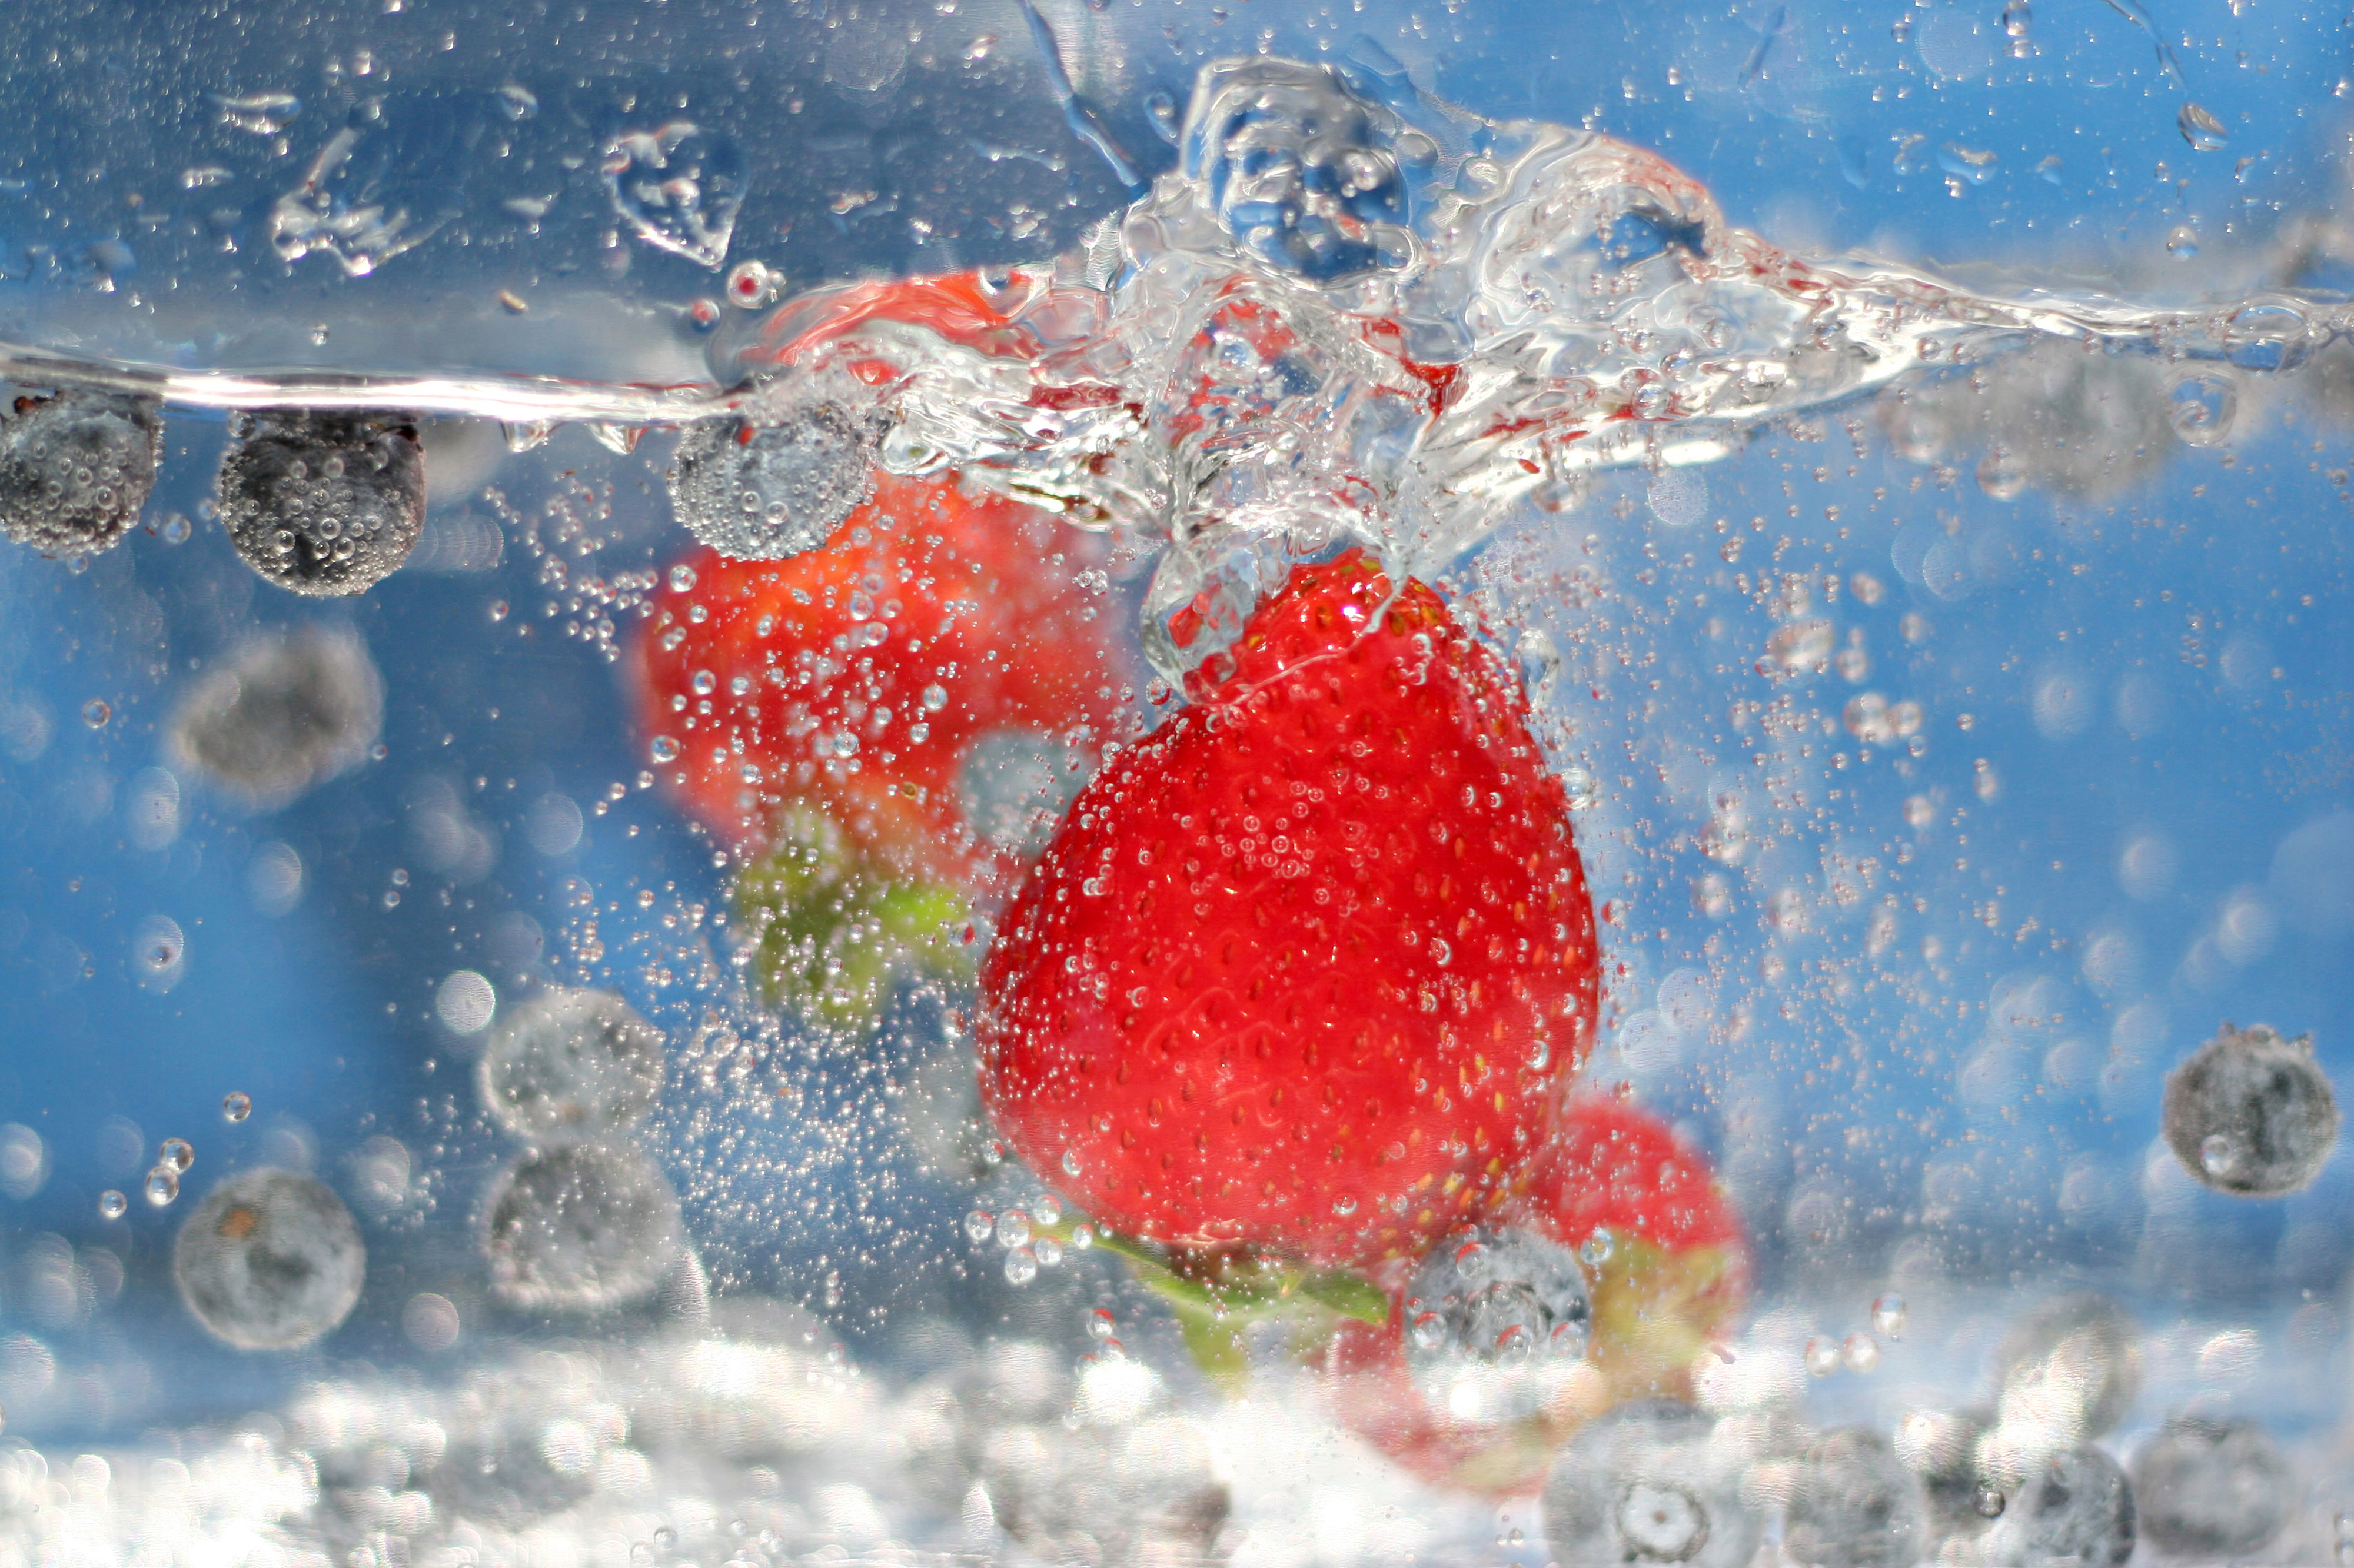 Strawberry 5019 in water 54642